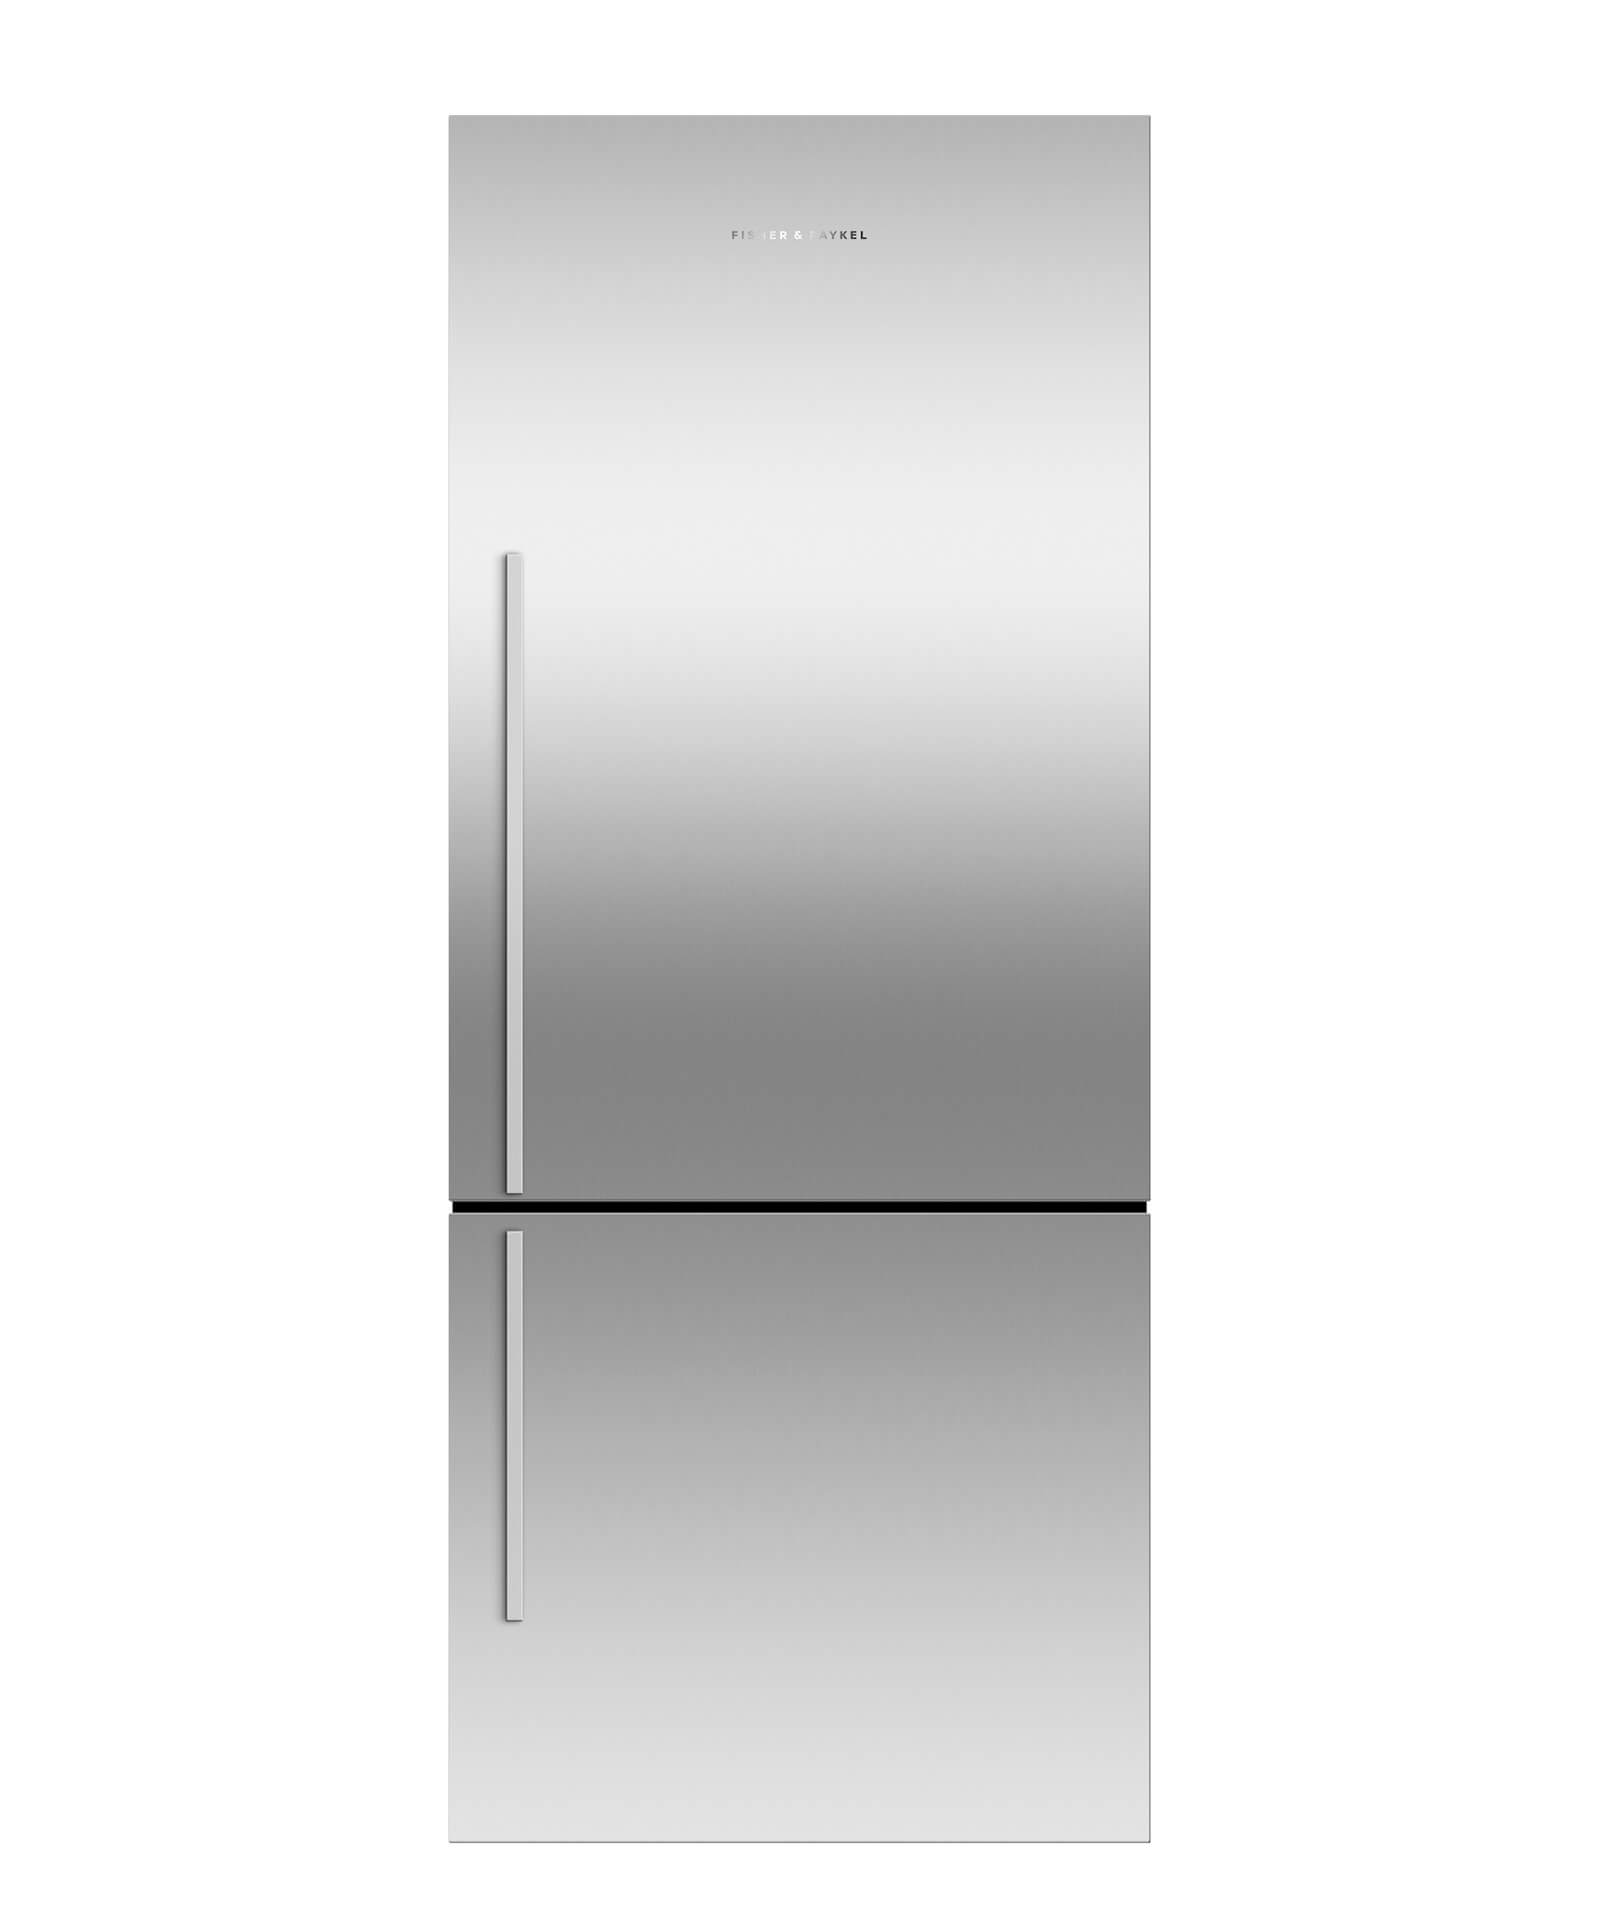 E442BRXFD5 - ActiveSmart™ Fridge - 680mm Bottom Freezer 442L - 25541